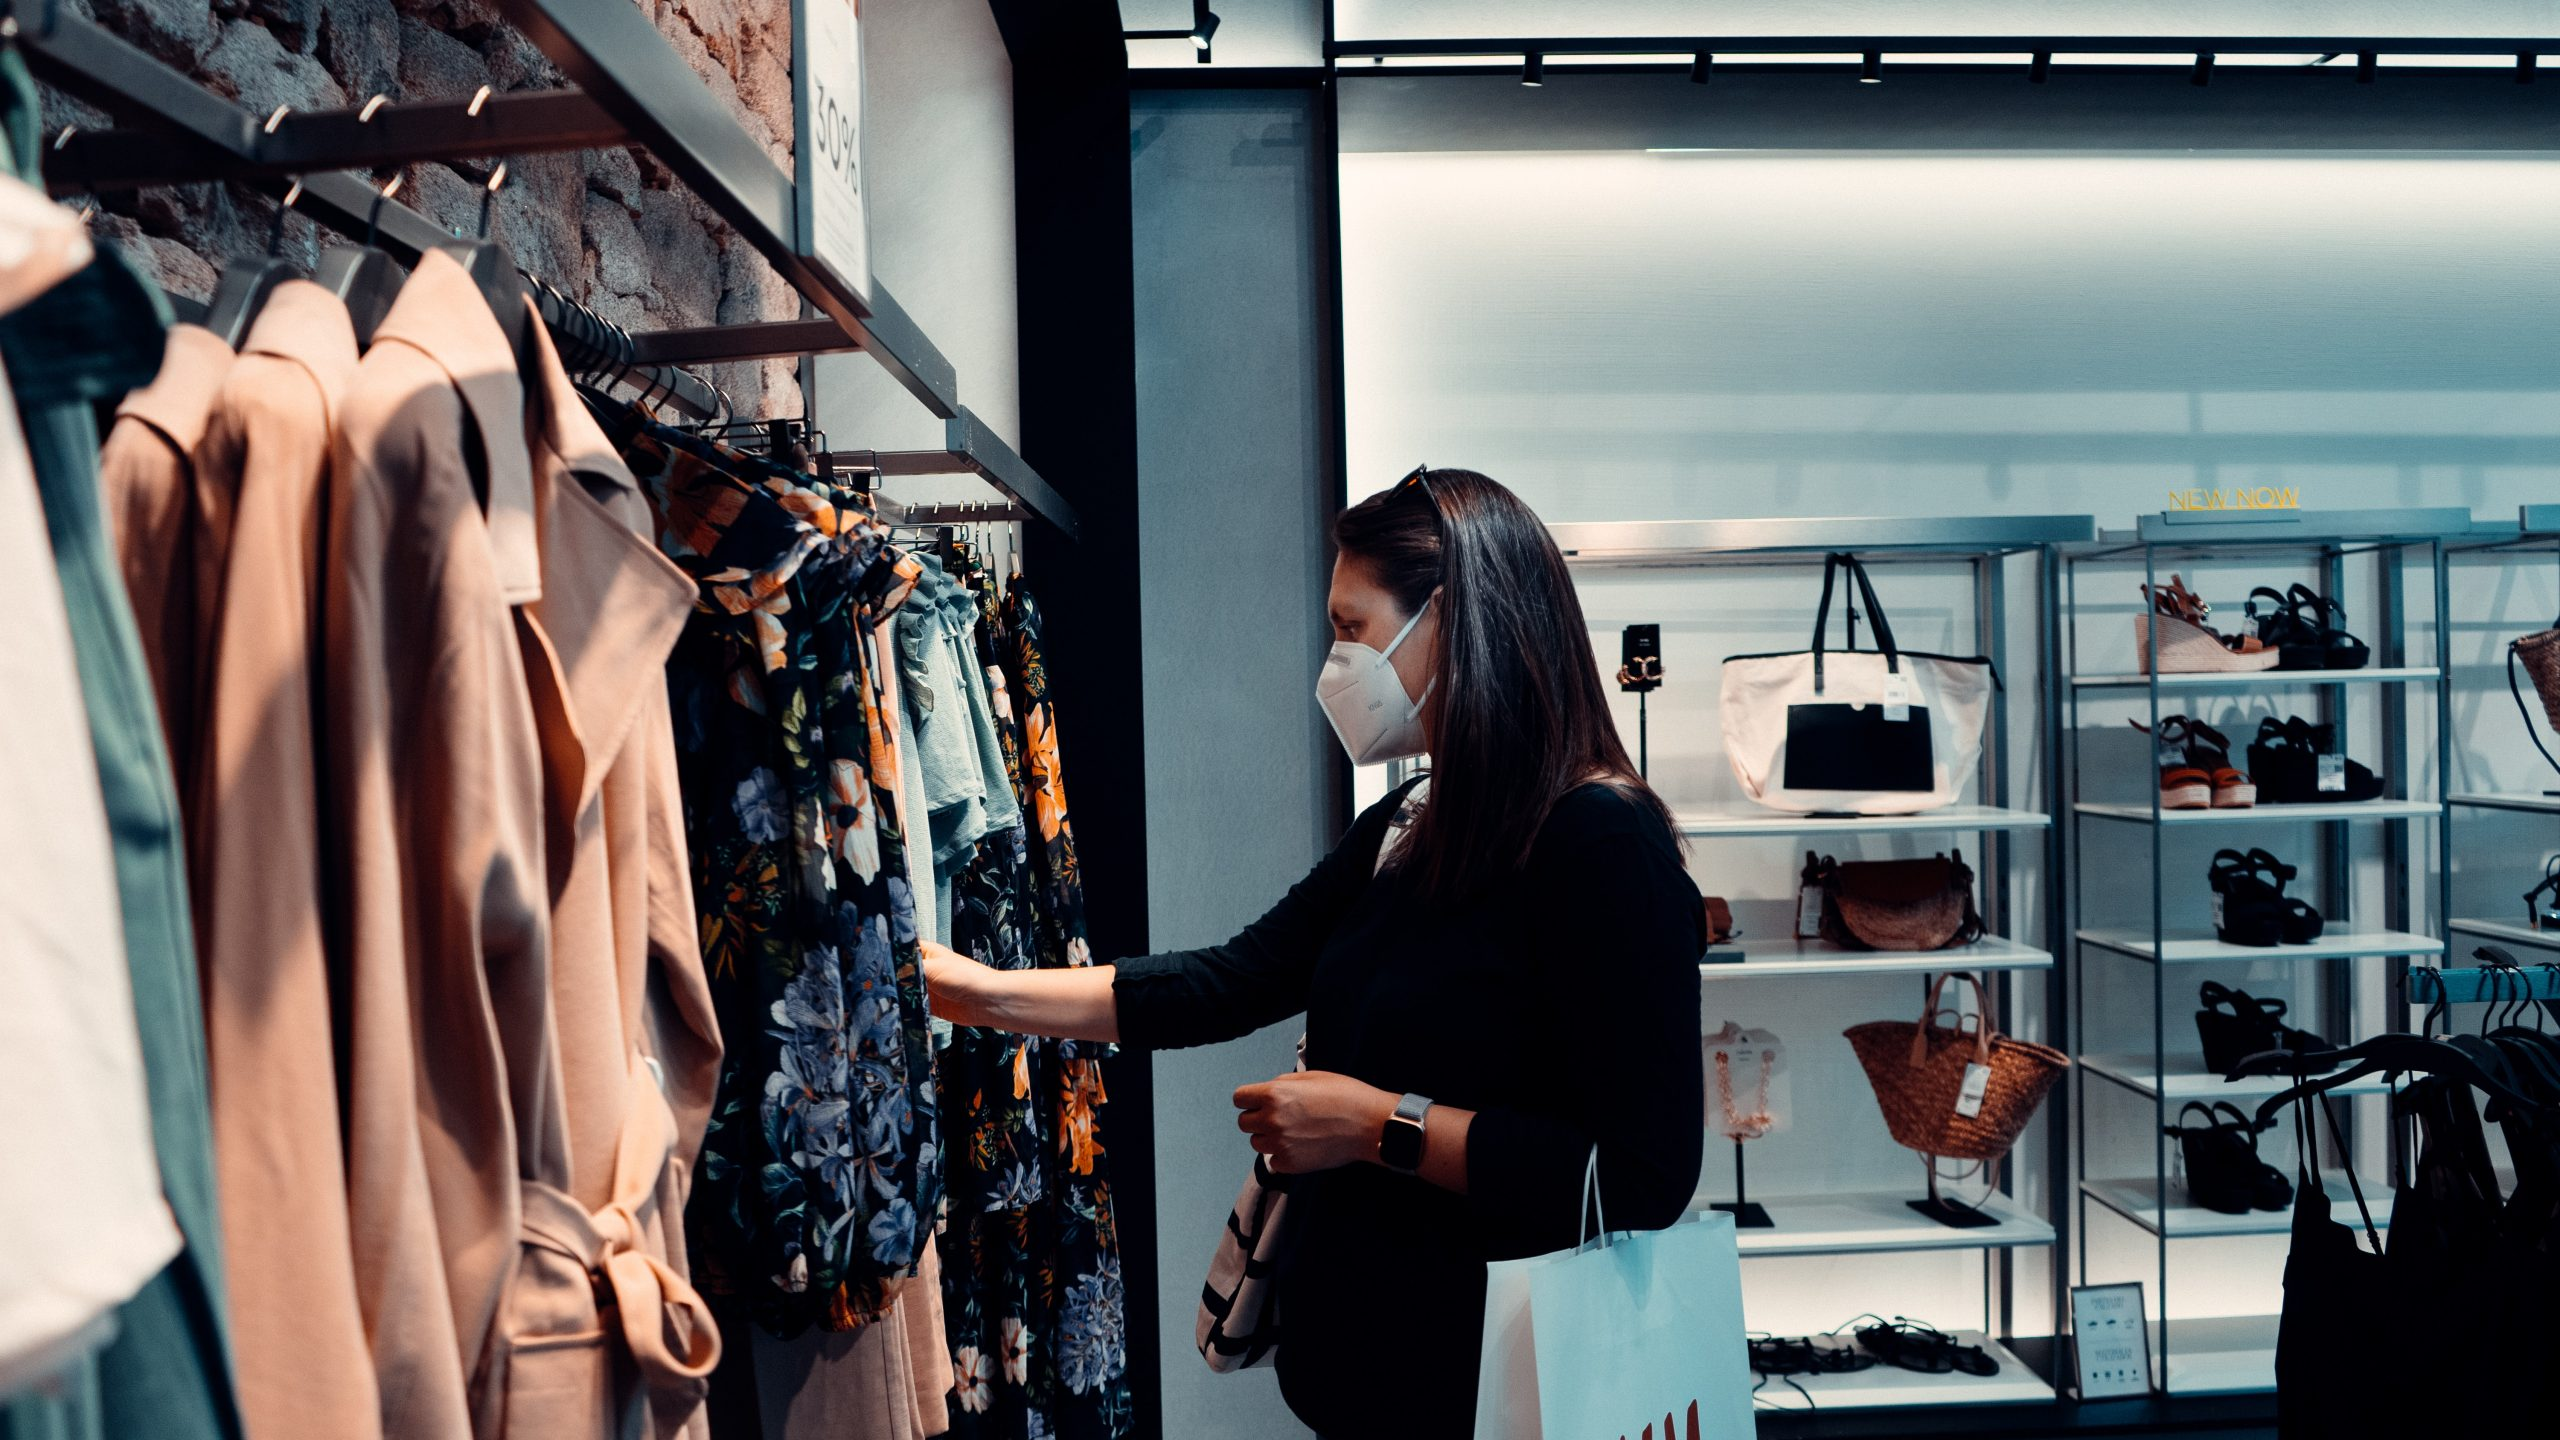 A woman shopping with a face mask on. Arturo Rey/Unsplash